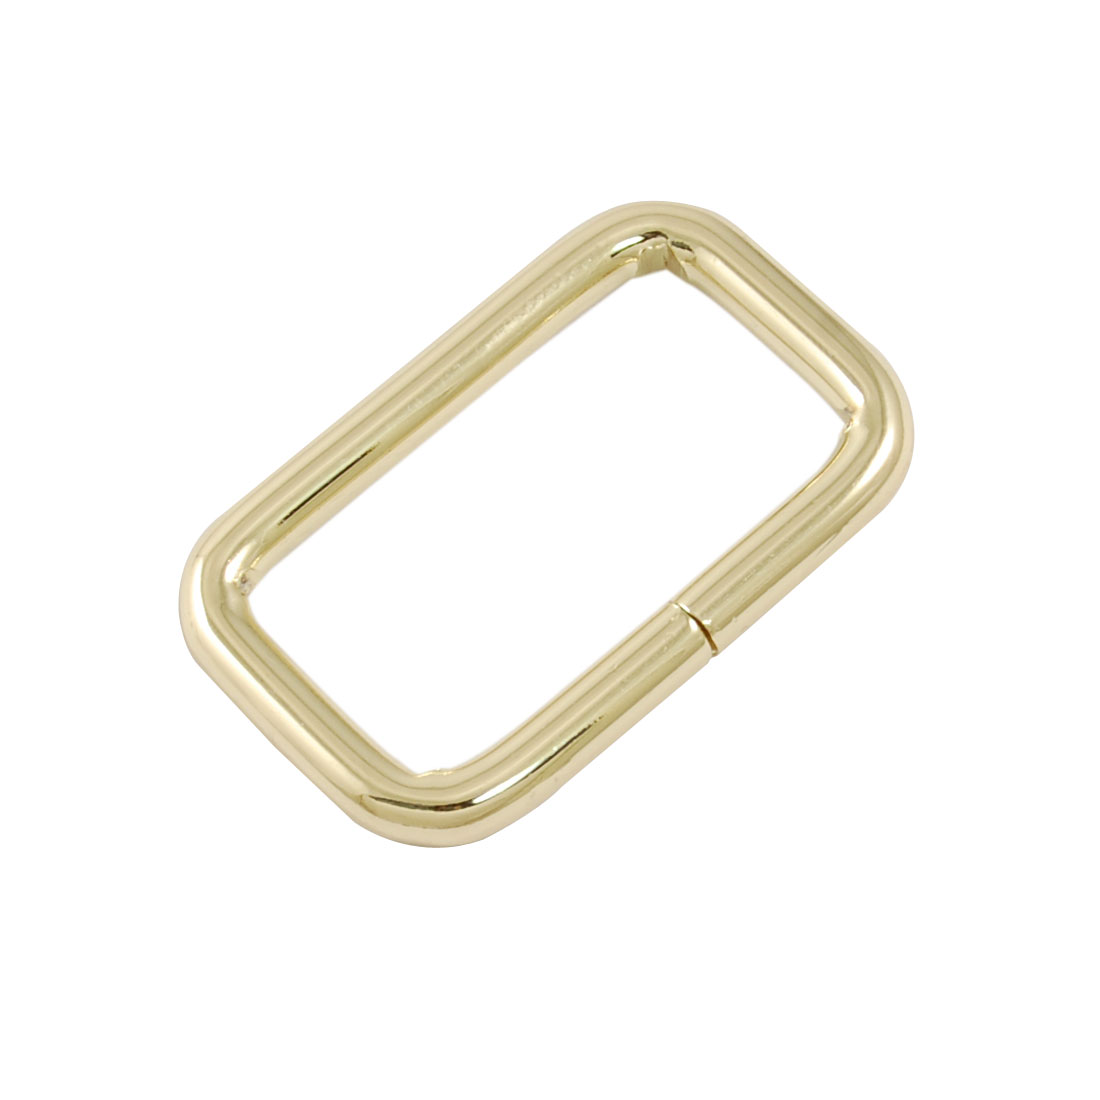 Handbag Decoration Ornament Copper Tone Metal Rectangle Shape Buckle 2 Pcs